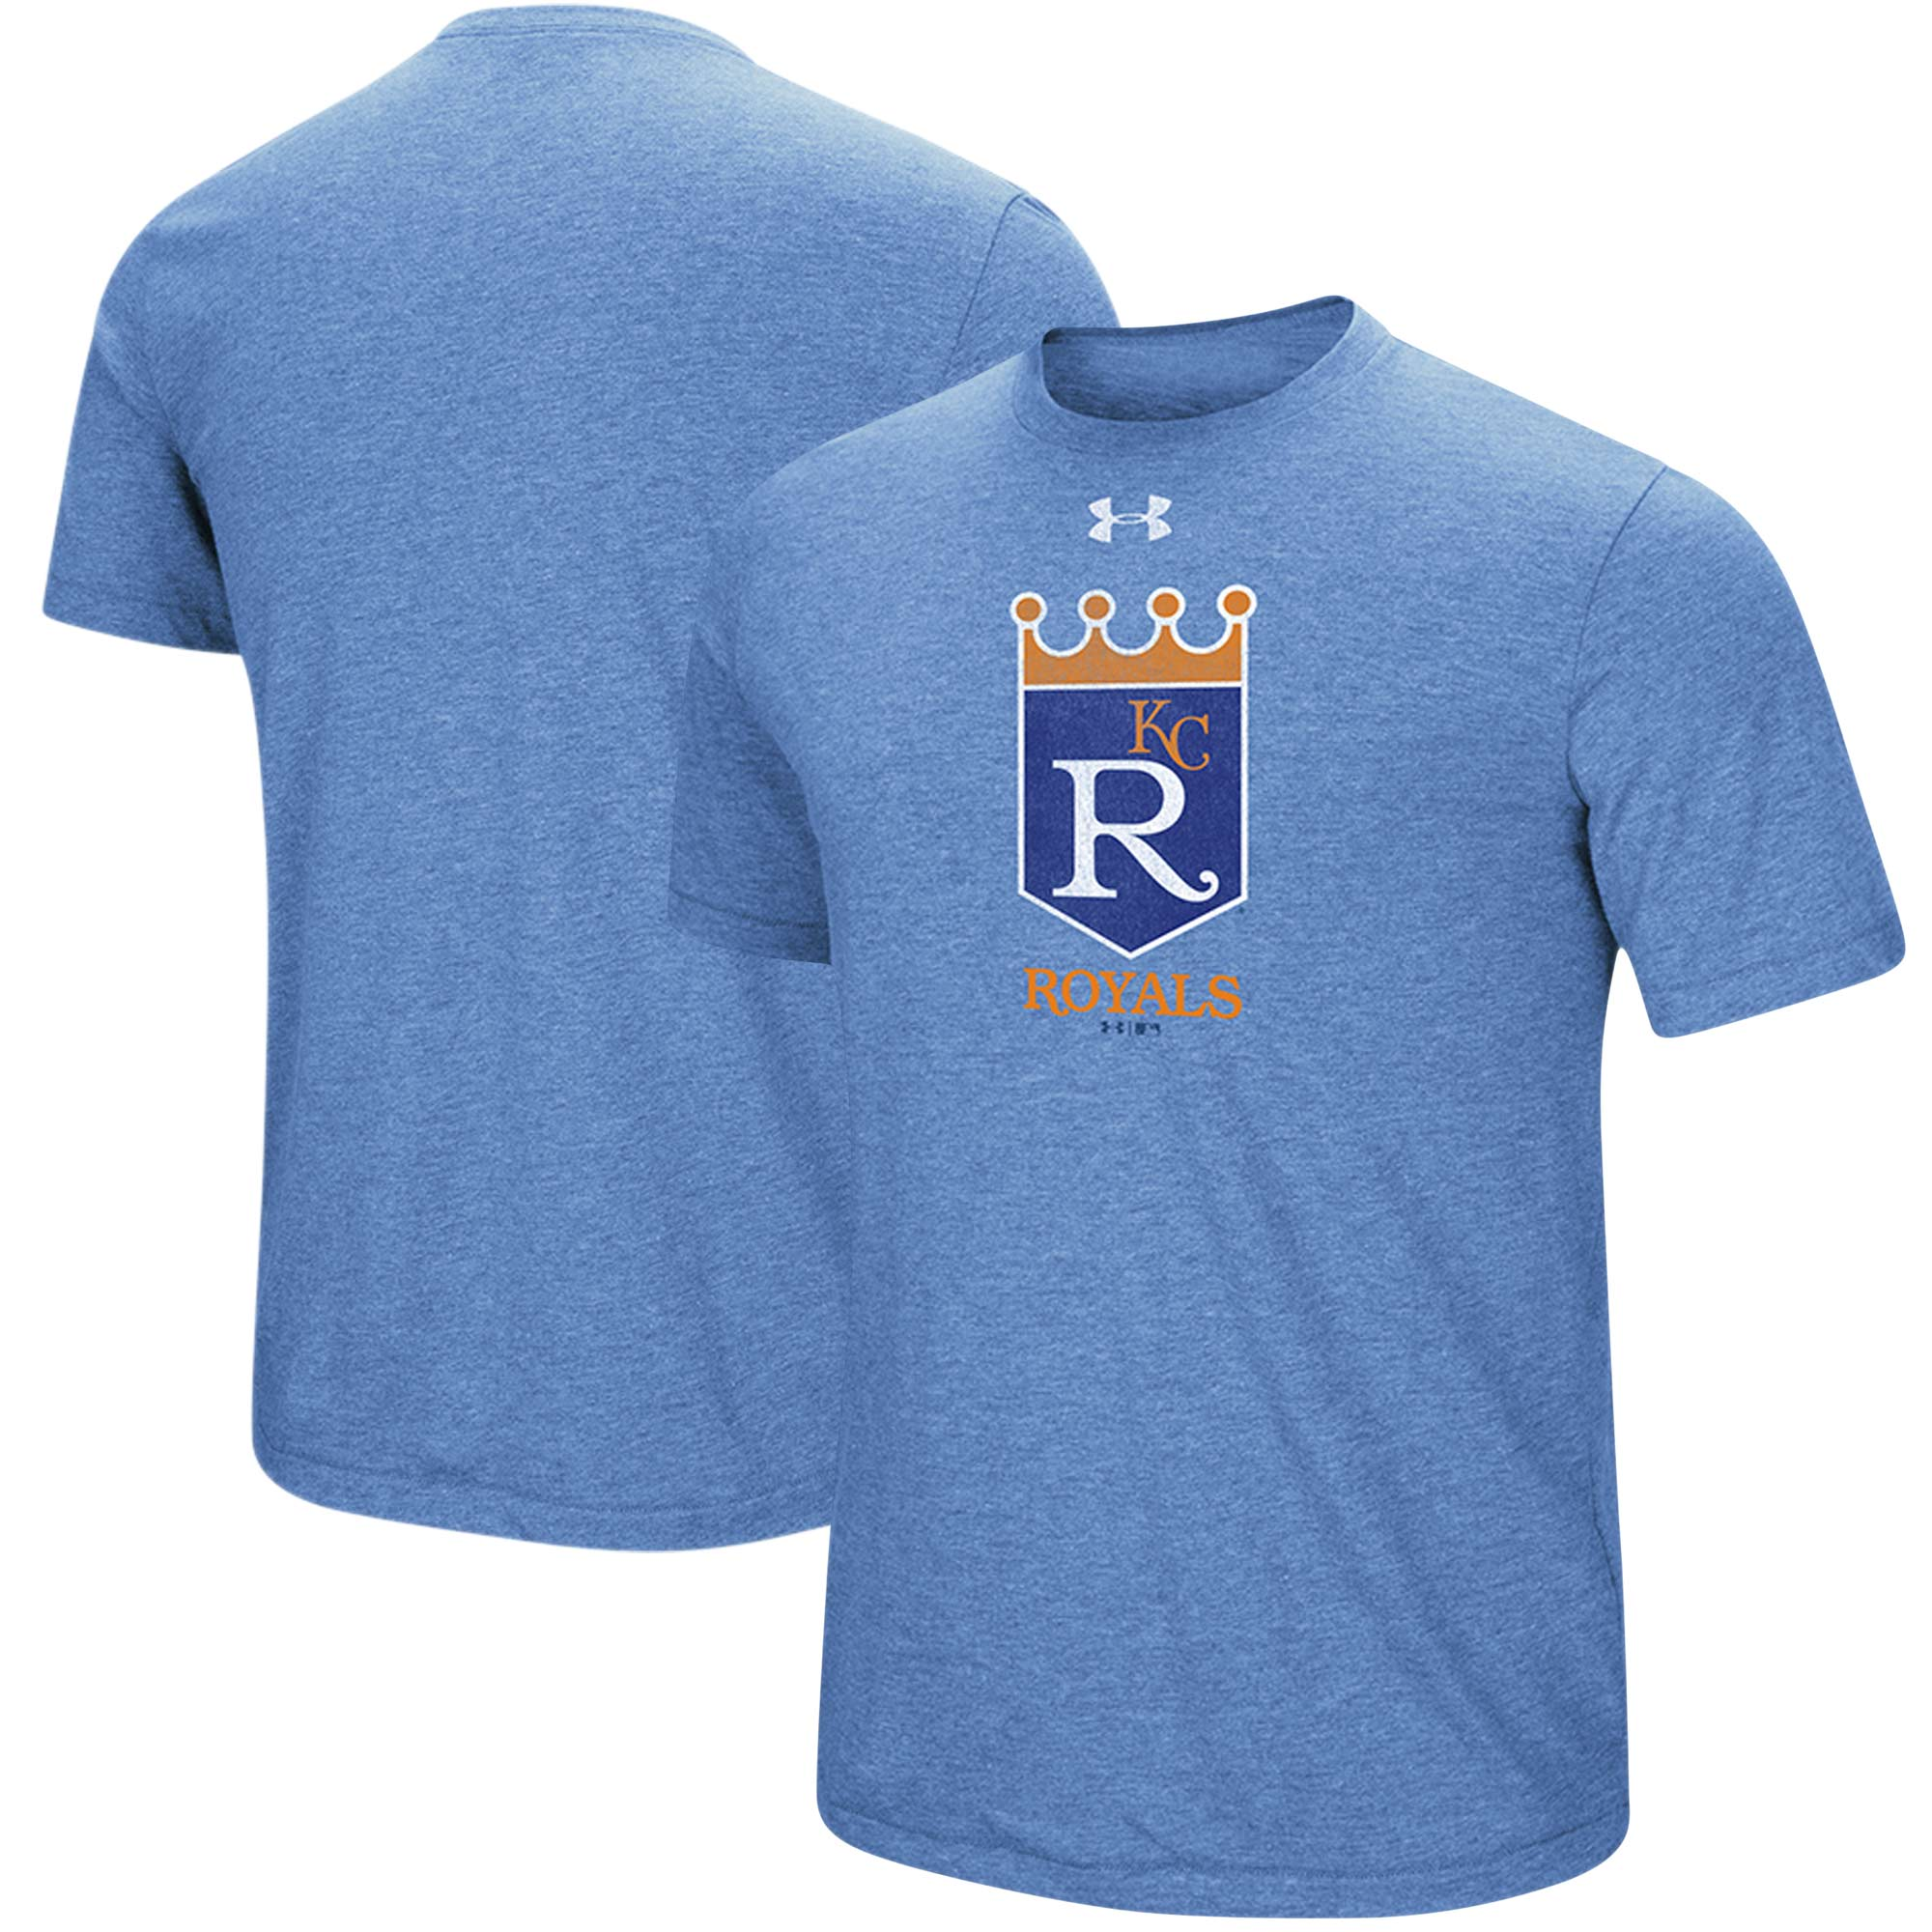 Kansas City Royals Under Armour Cooperstown Collection Mark Performance Tri-Blend T-Shirt - Heathered Royal